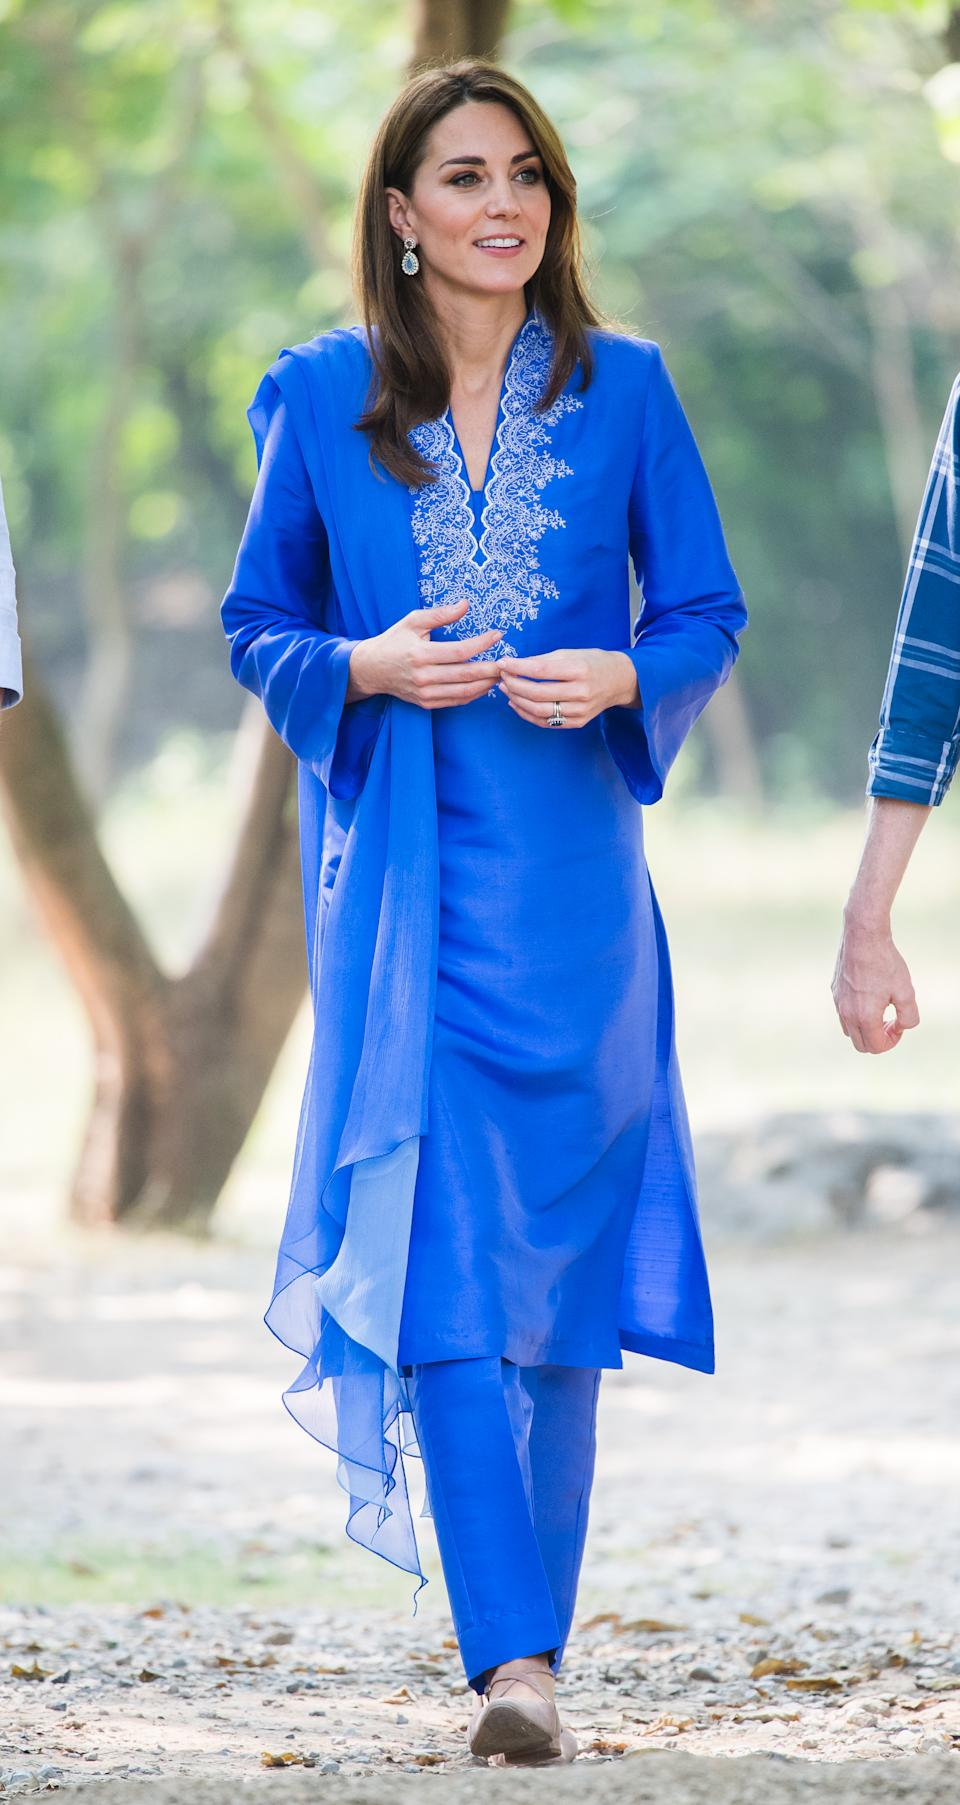 """Kate wore a traditional, royal blue shalwar kameez by Pakistani designer Maheen Khan for her first official occasion on the tour. A pair of <a href=""""https://fave.co/2Mj8bXq"""" rel=""""nofollow noopener"""" target=""""_blank"""" data-ylk=""""slk:£24 shoes from New Look"""" class=""""link rapid-noclick-resp""""><strong>£24 shoes from New Look</strong></a> completed the outfit. The Duchess then changed into a pair of <a href=""""https://fave.co/2MMzGHY"""" rel=""""nofollow noopener"""" target=""""_blank"""" data-ylk=""""slk:Russell & Bromley flats, costing £195"""" class=""""link rapid-noclick-resp""""><strong>Russell & Bromley flats, costing £195</strong></a>. <em>[Photo: Samir Hussein/WireImage]</em>"""